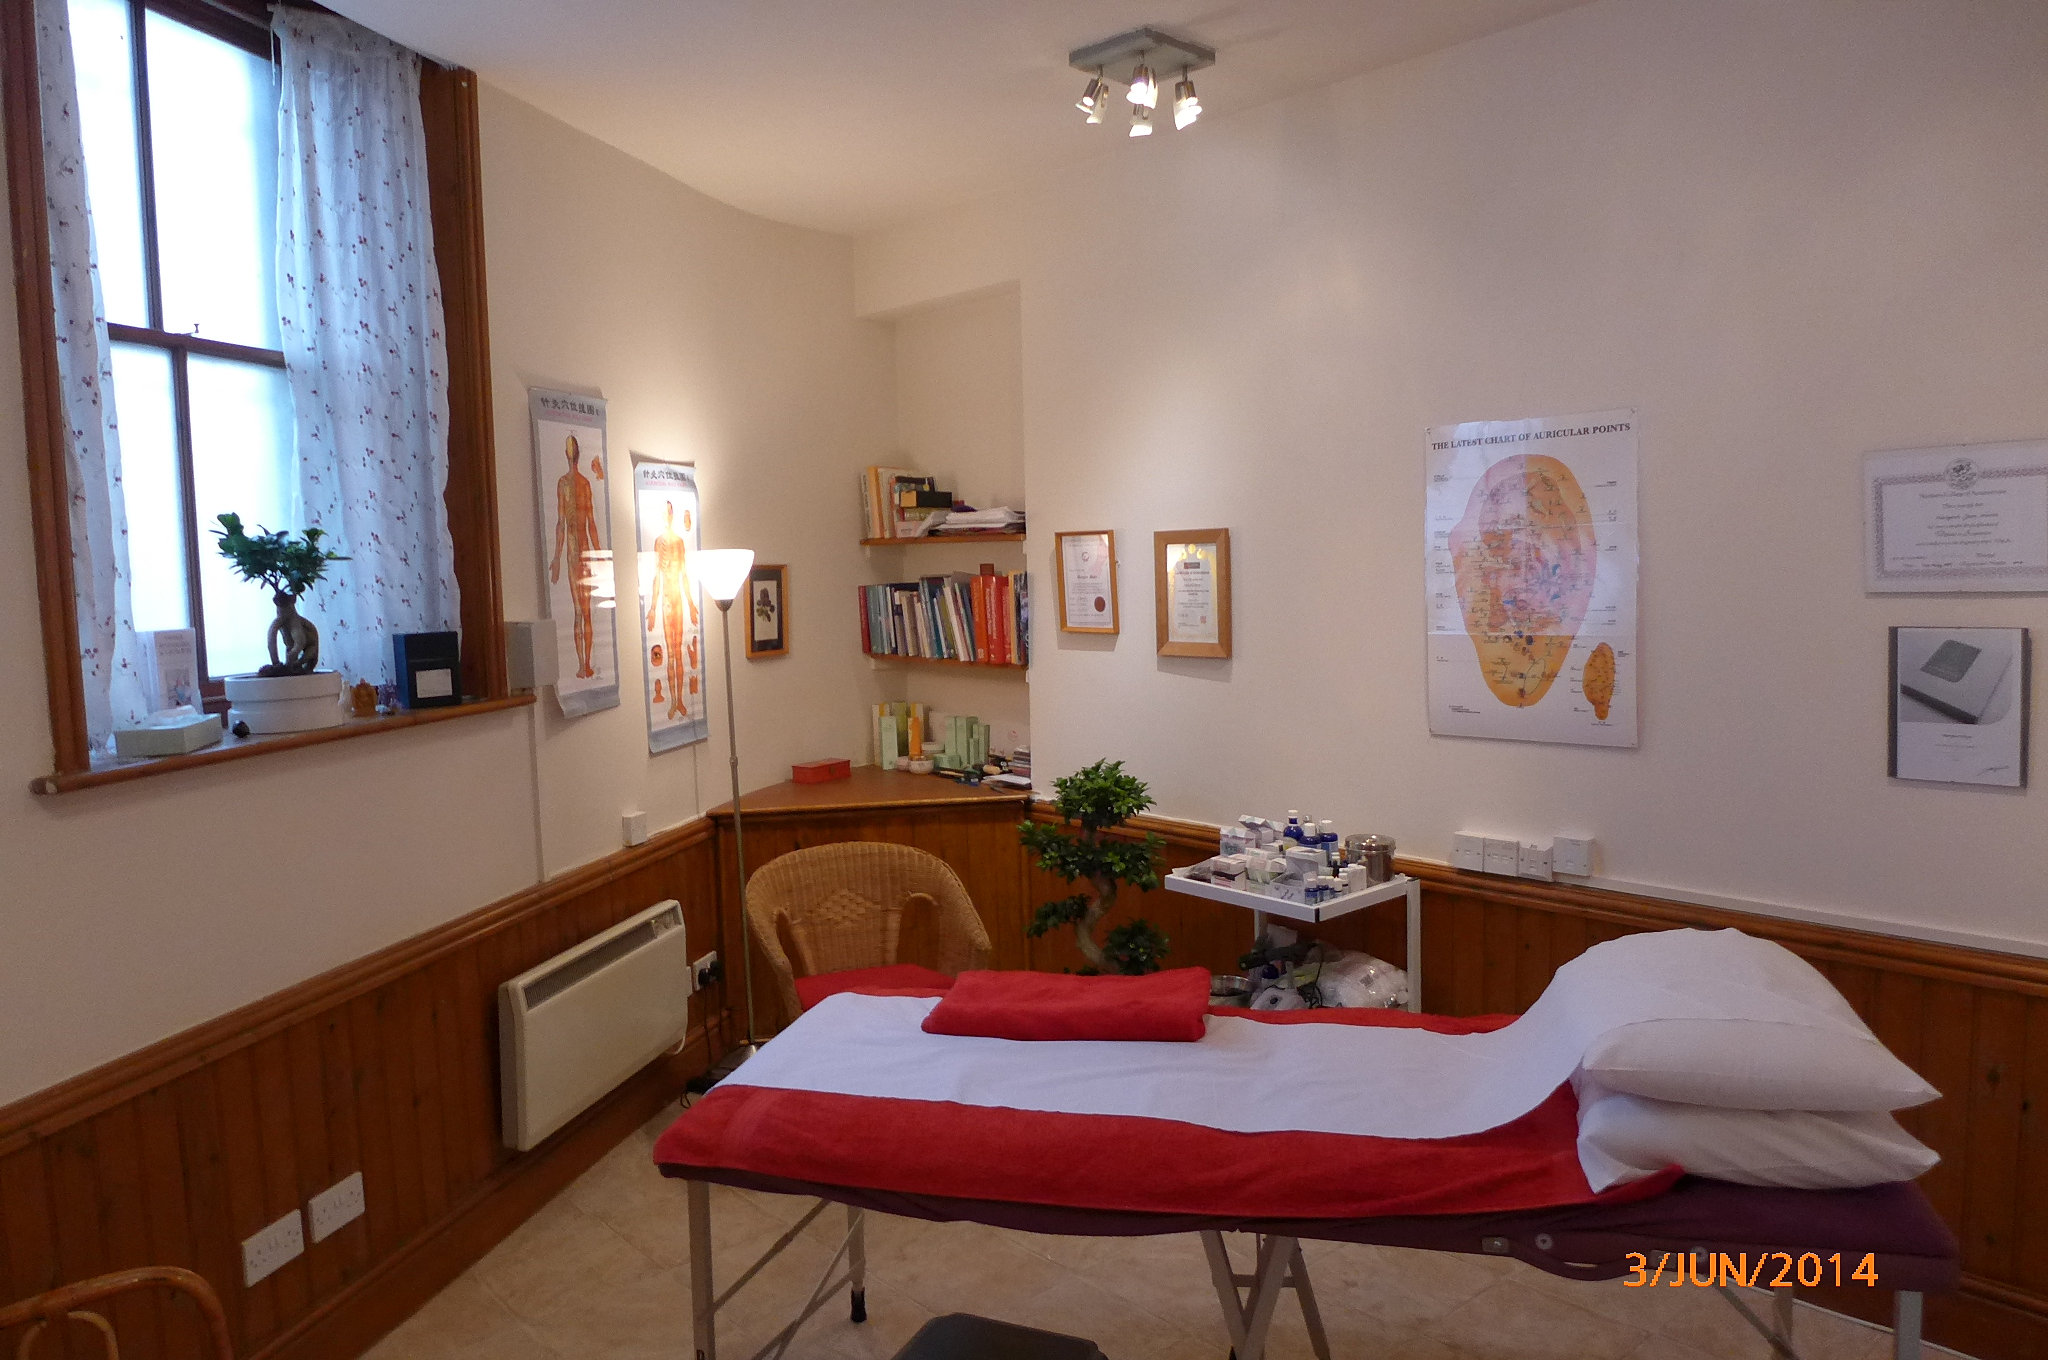 naturalhealthclinicbramptoncouk Acupuncture roomJPG